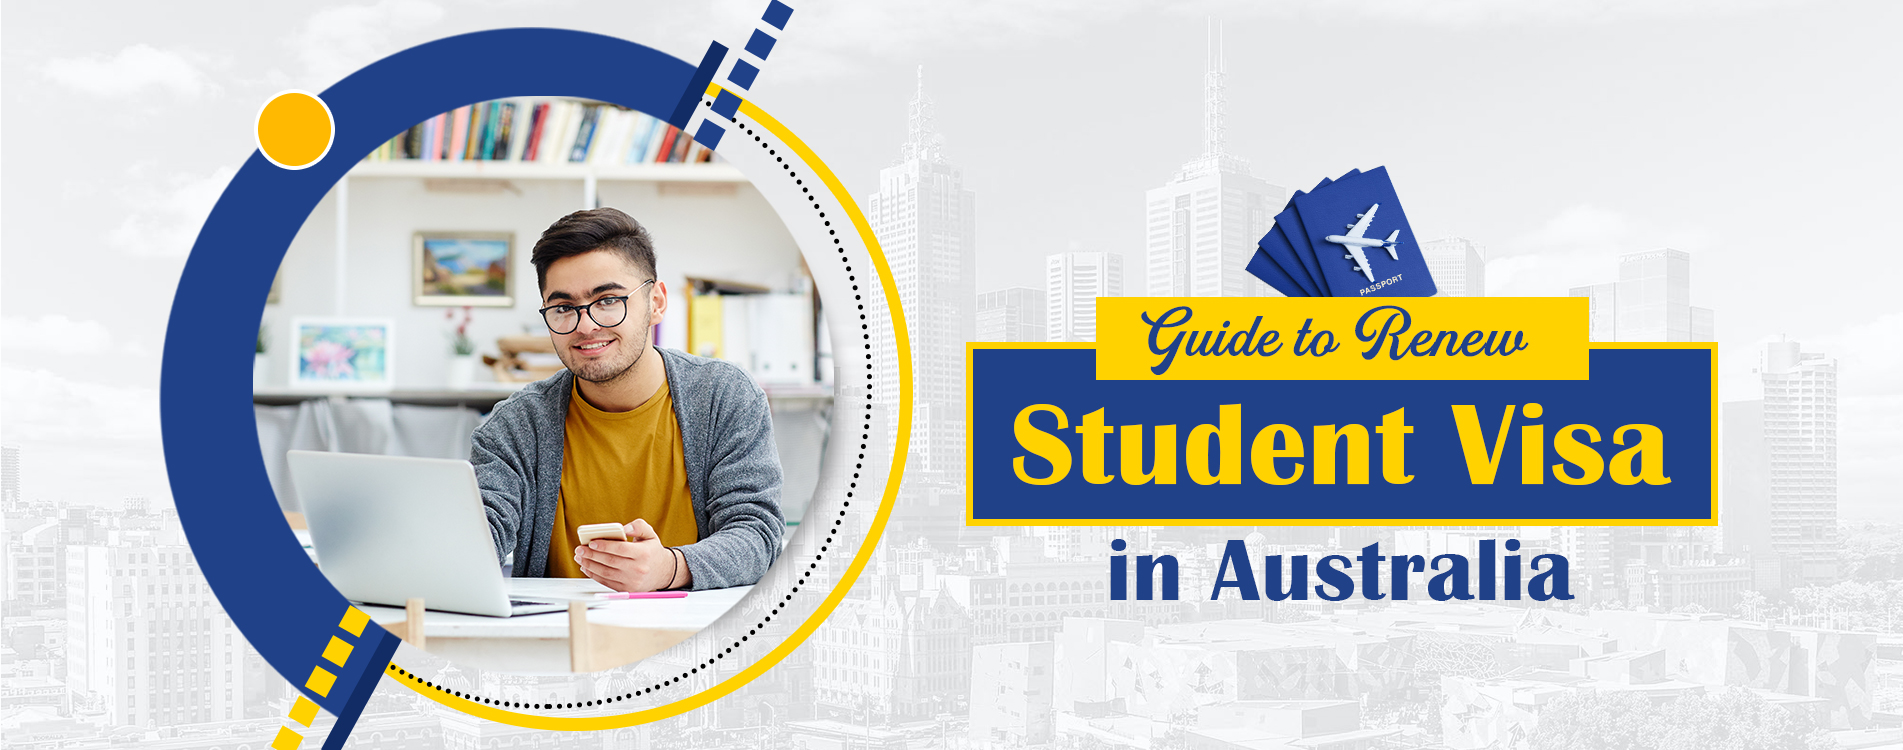 Guide to Renew Student Visa in Australia